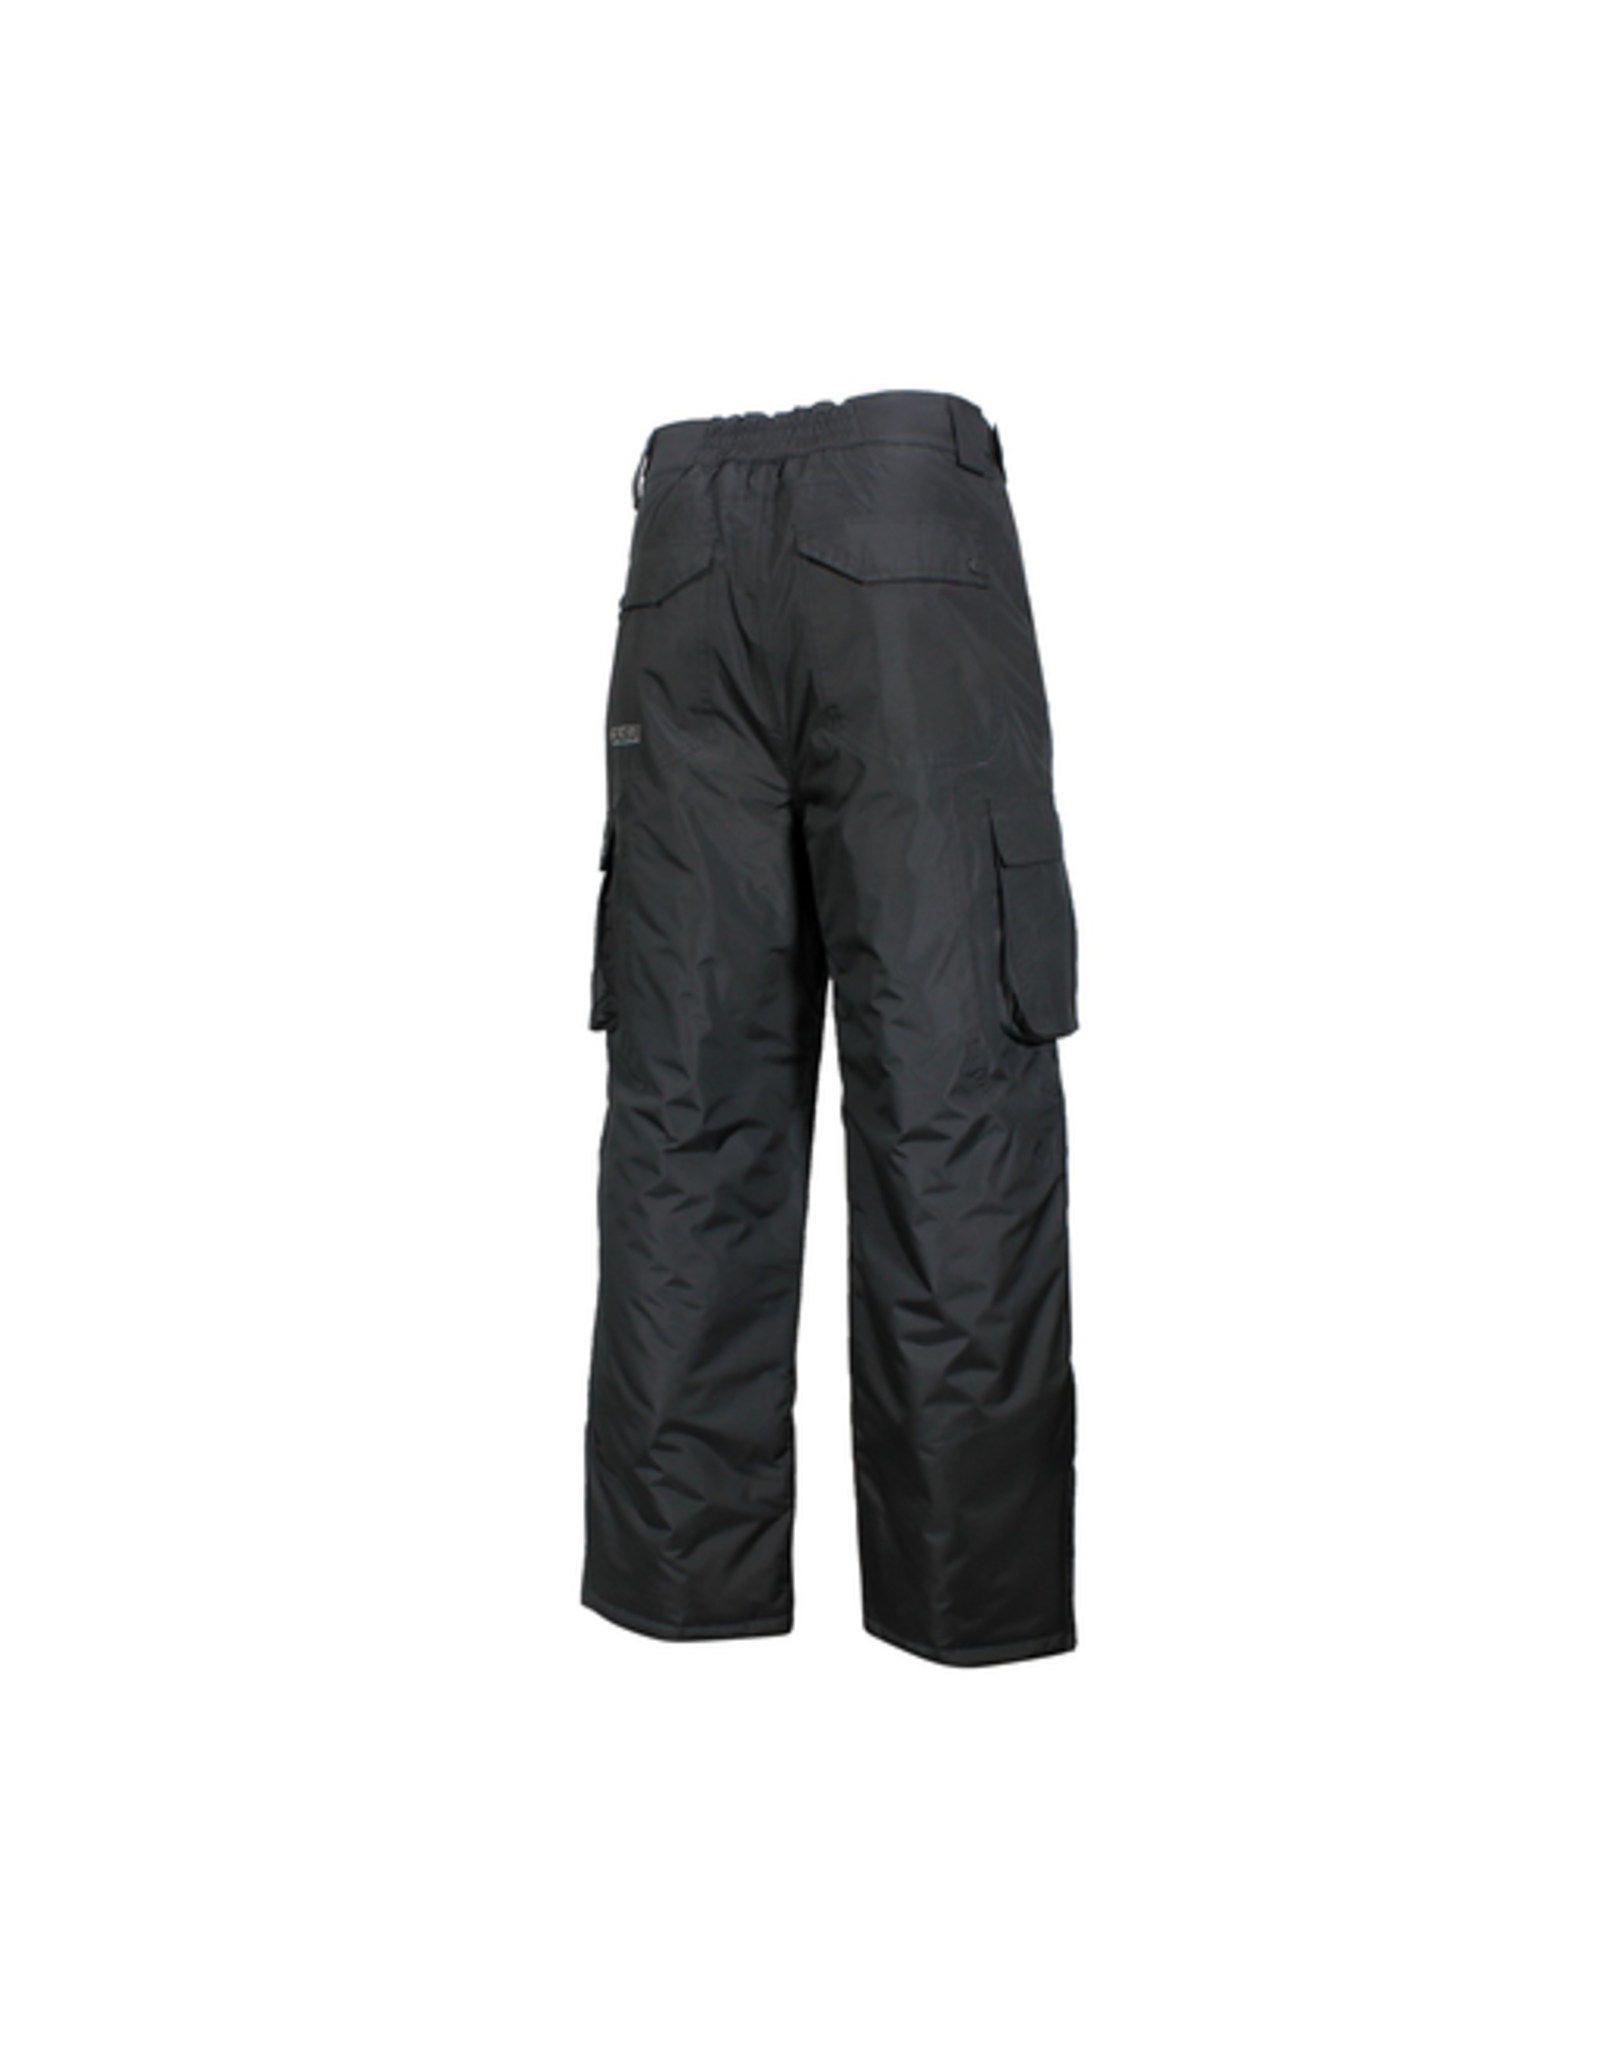 GKS GKS Men's Insulated Waist Pant